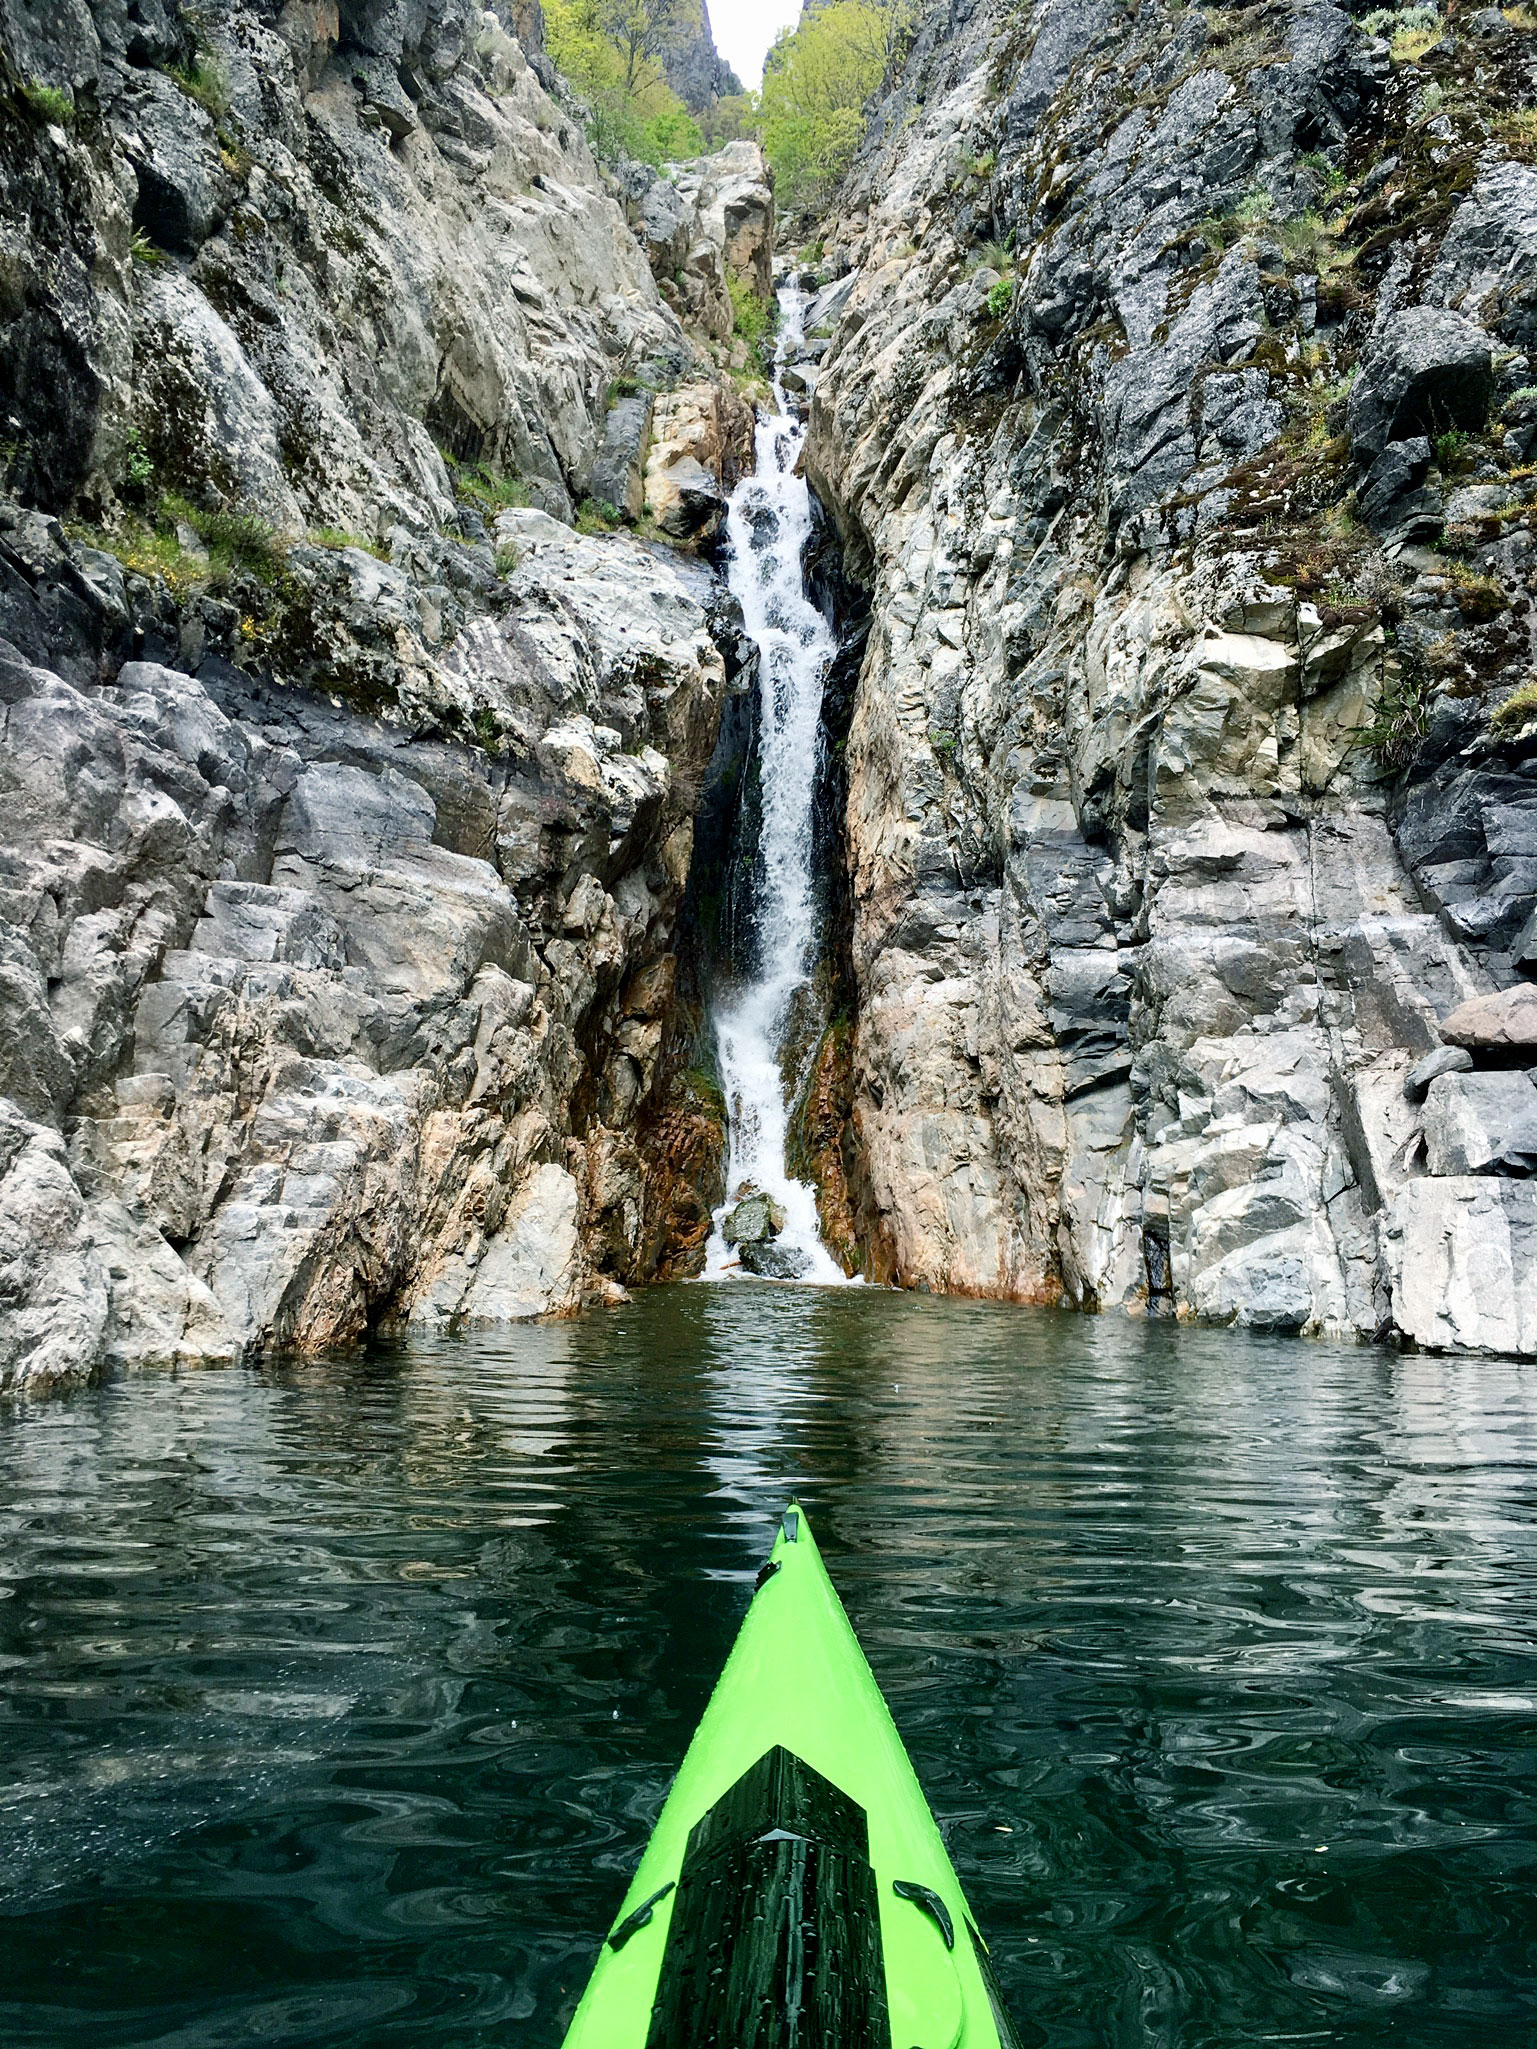 Another fantastic aspect of paddling by the shear cliffs and discovering some of the numerous hidden waterfalls that plunge hundreds of feet directly into the water below. In a kayak or SUP, one can get quite close to them.